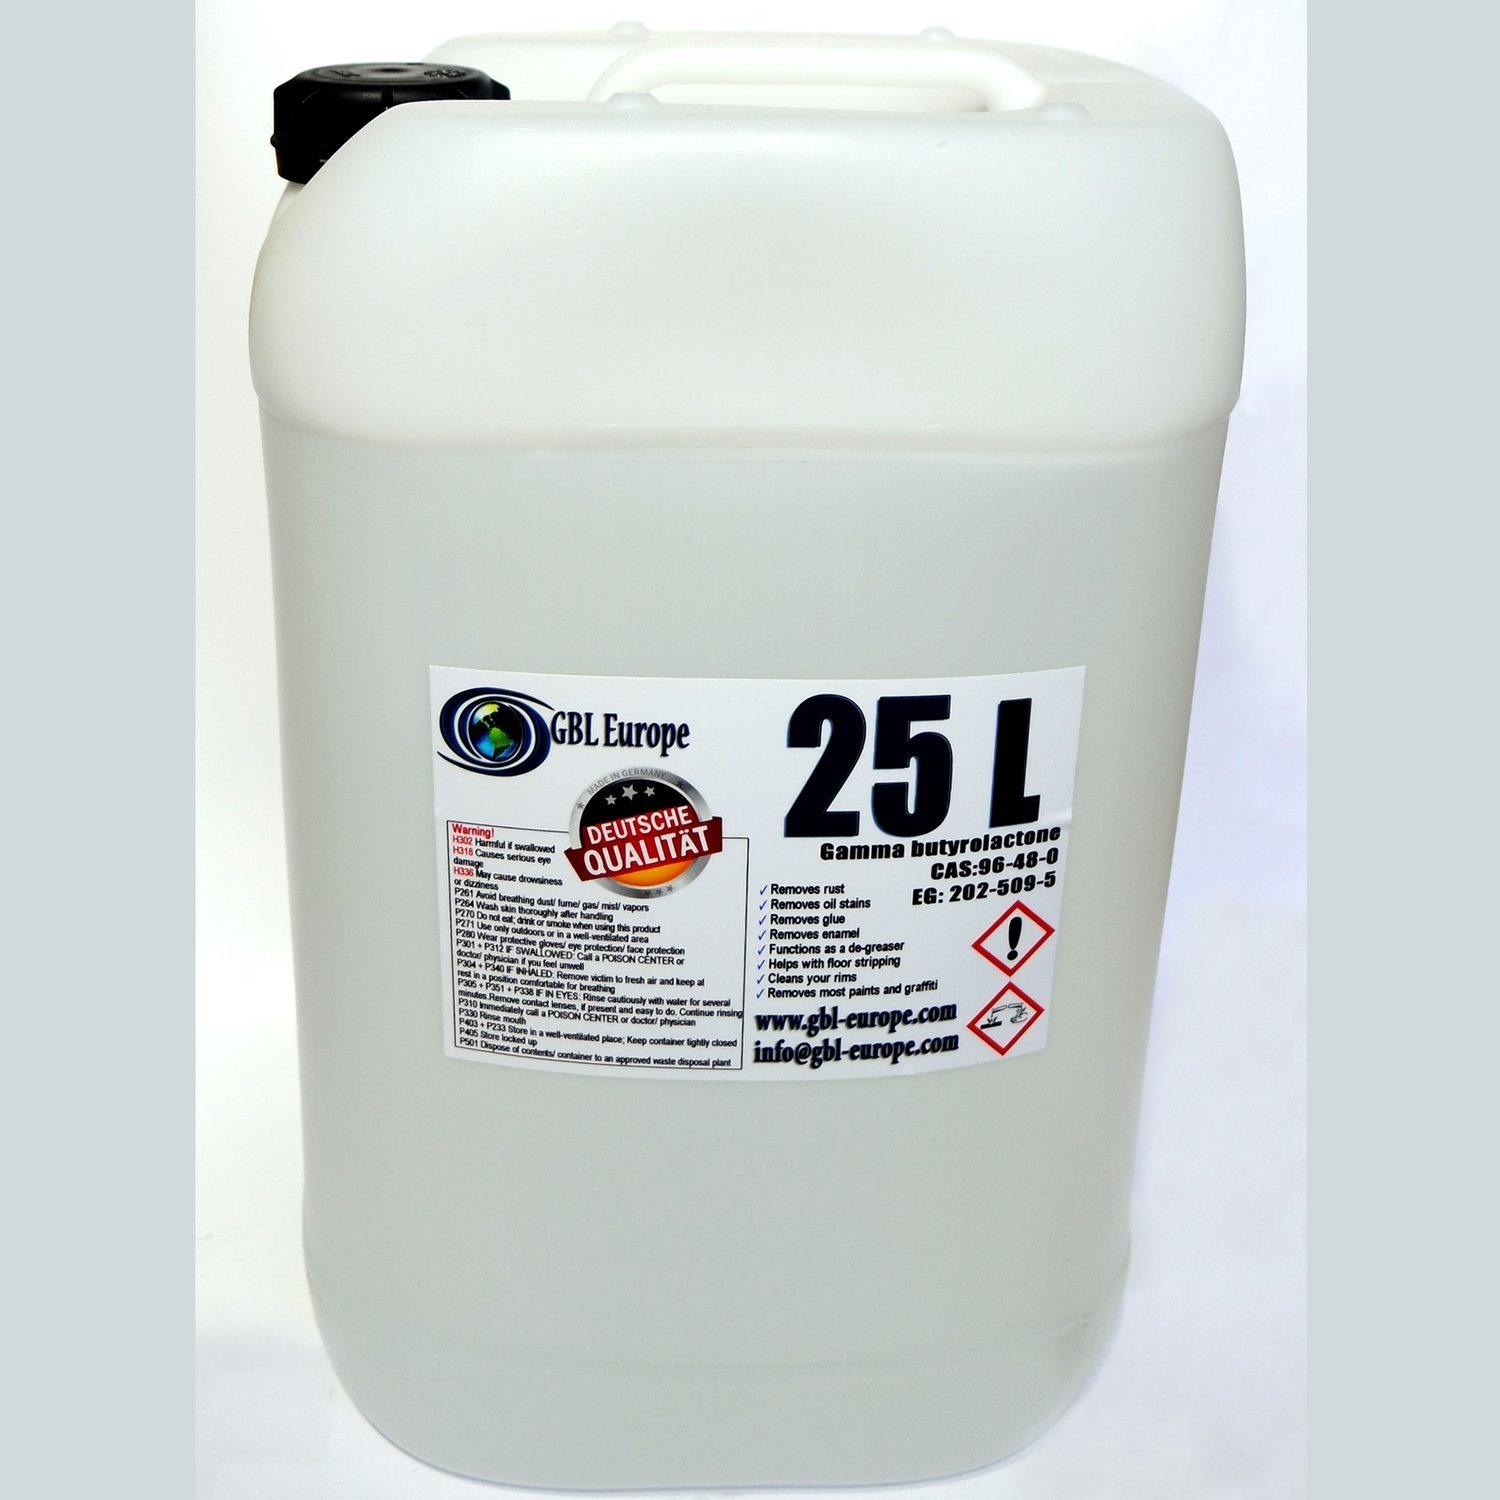 Multi Remover 25.000 ml Pharma Grade German Quality Canister 00024 HS Code 29322020